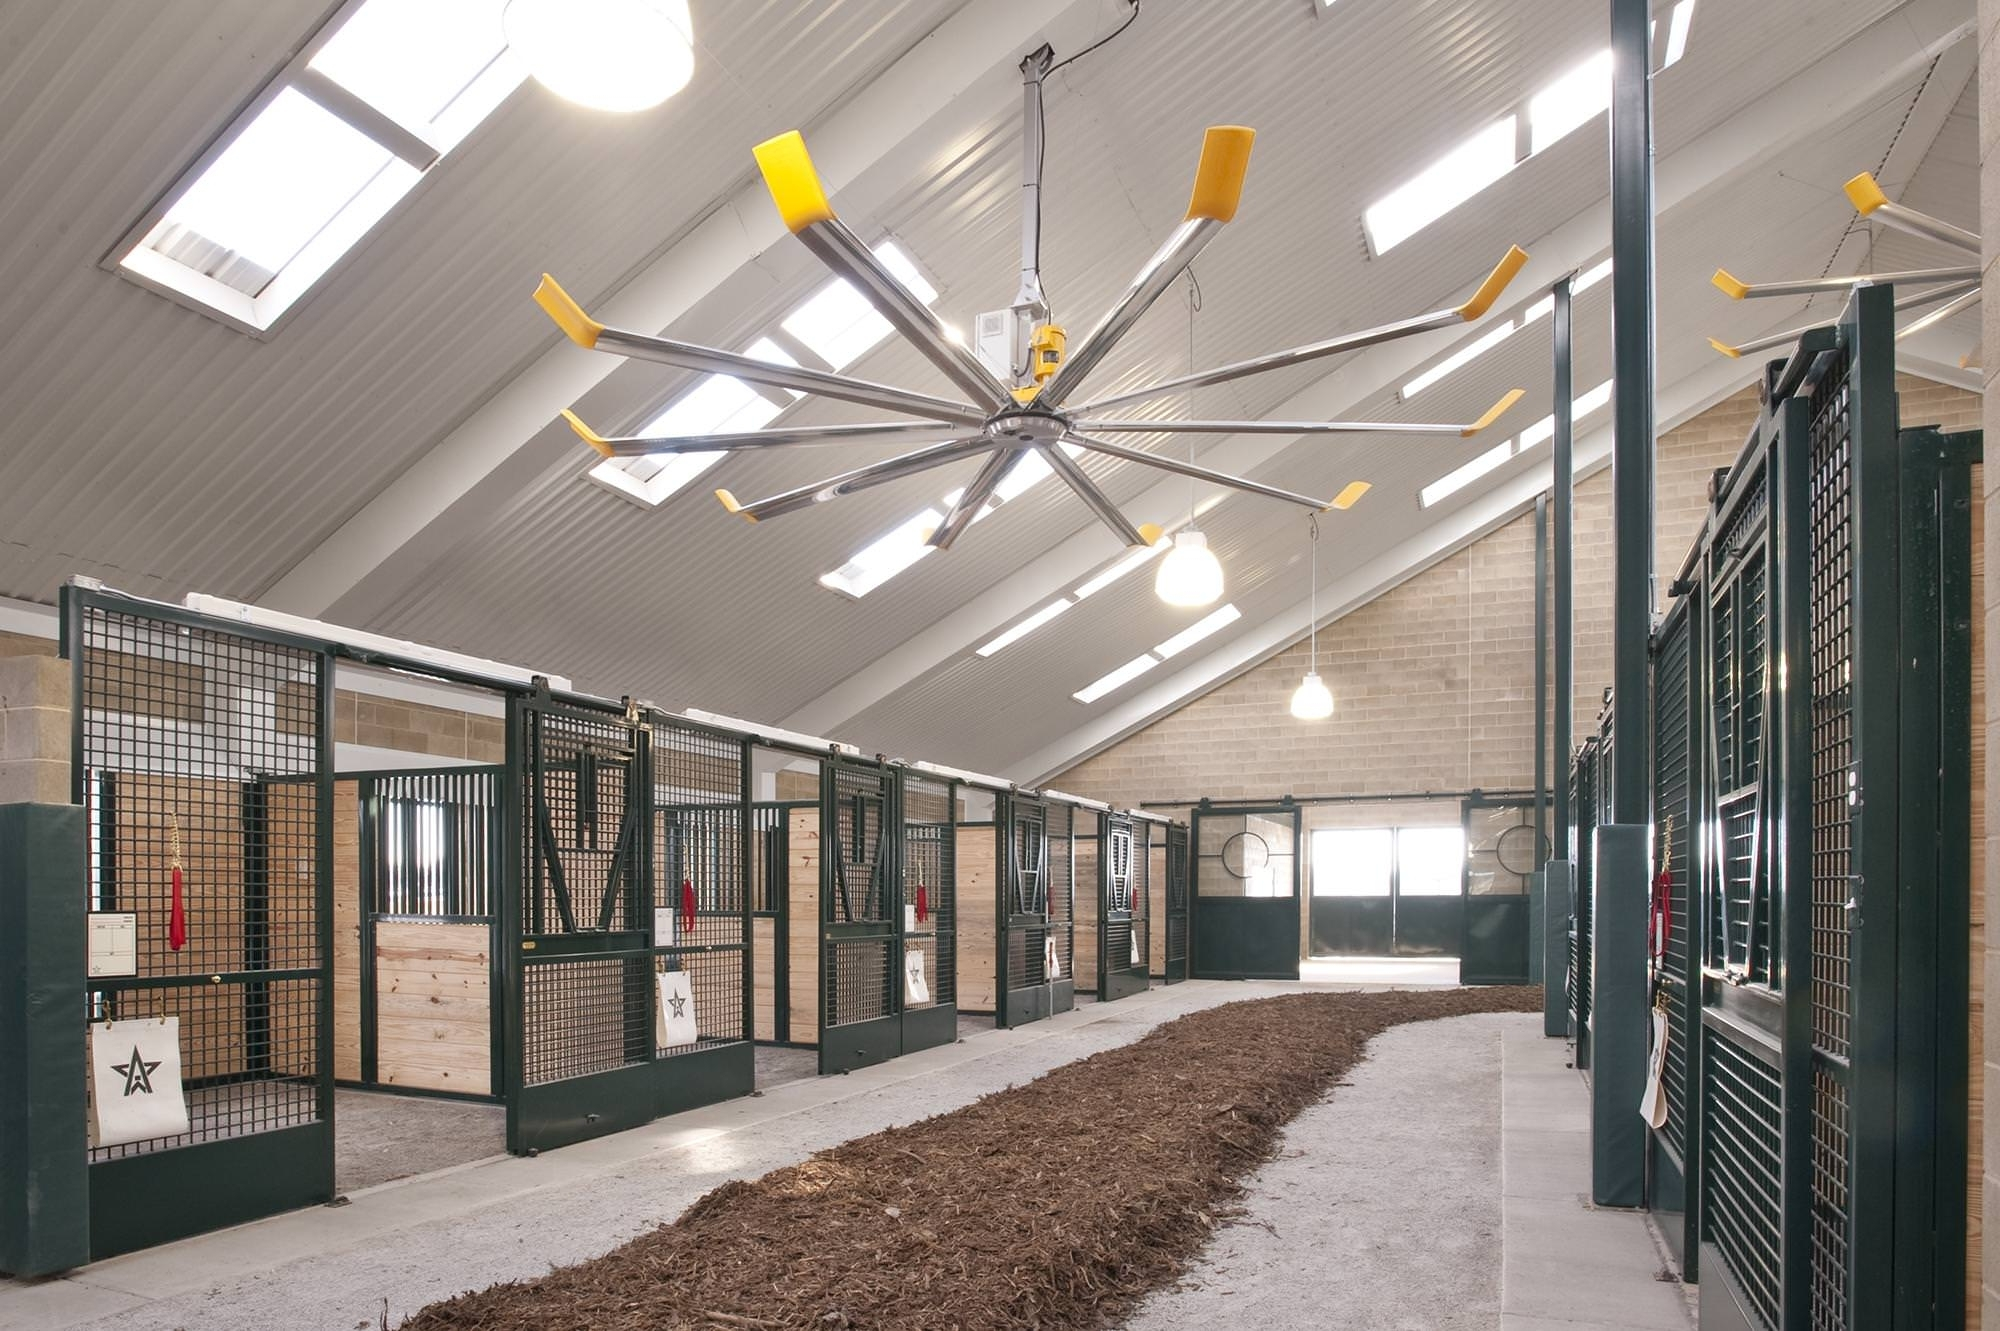 Cur Outdoor Ceiling Fans For Barns Inside Large Les Riding Arenas